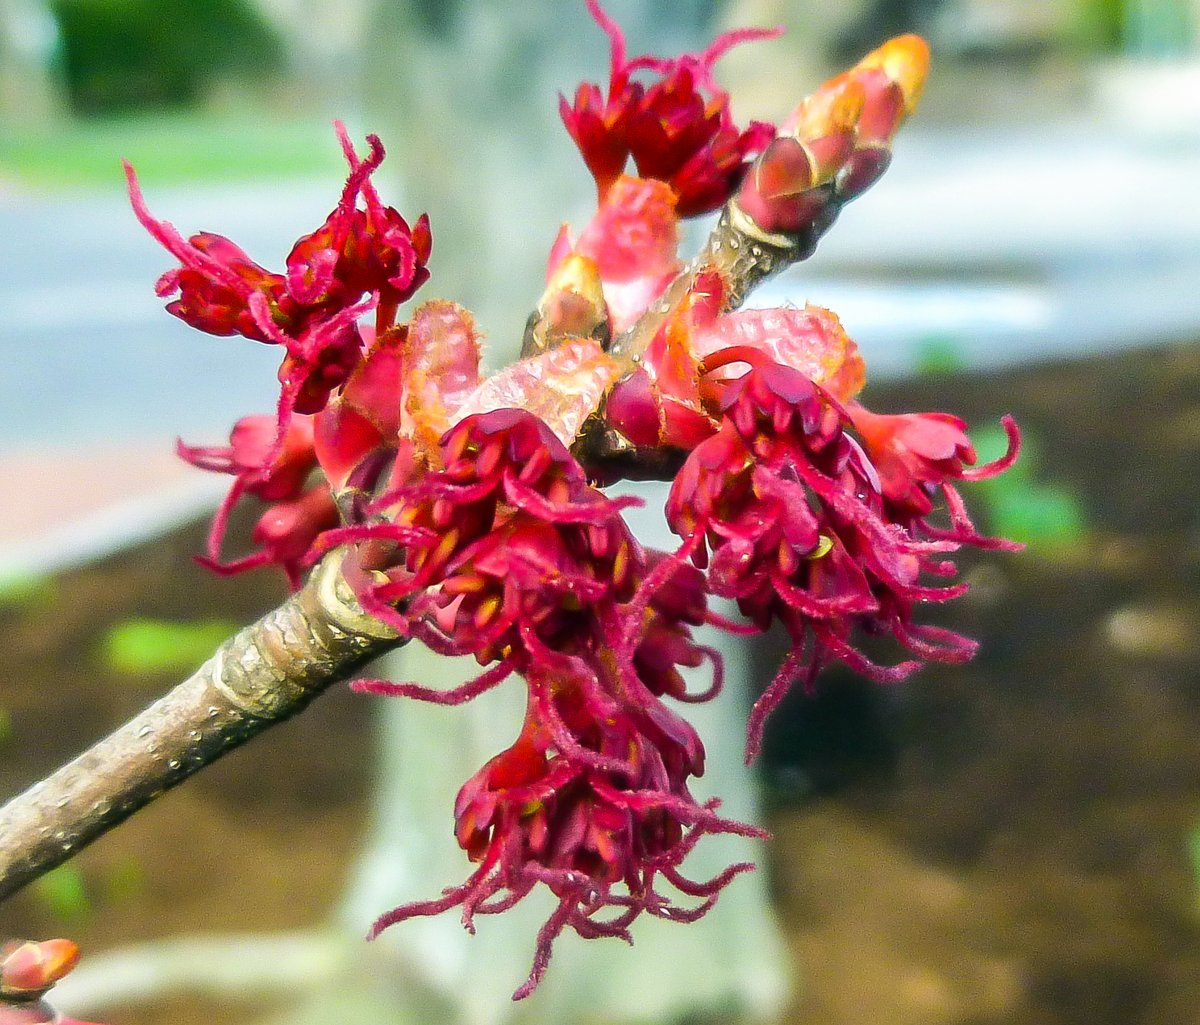 2. Red Maple Flowers